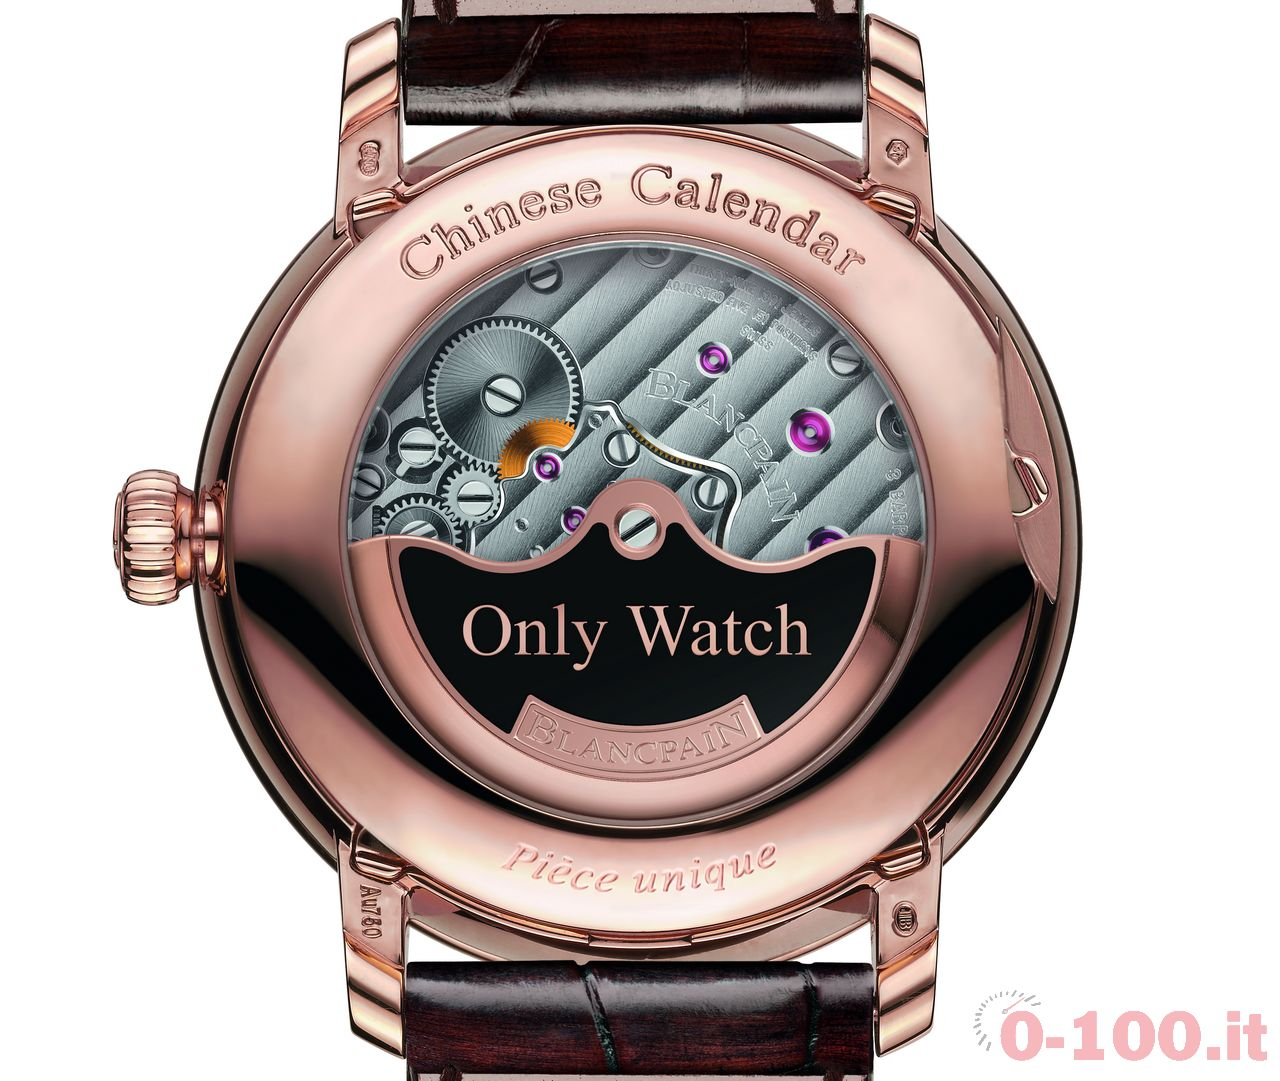 only-watch-2015-blancpain-villeret-calendrier-chinois-traditionnel_0-1002